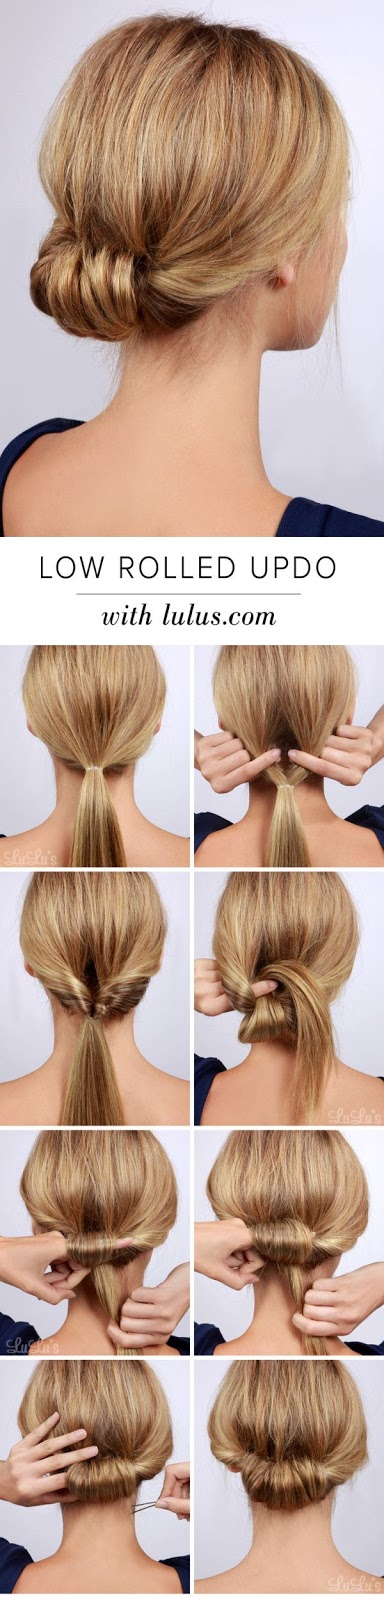 diy hairstyles pinterest